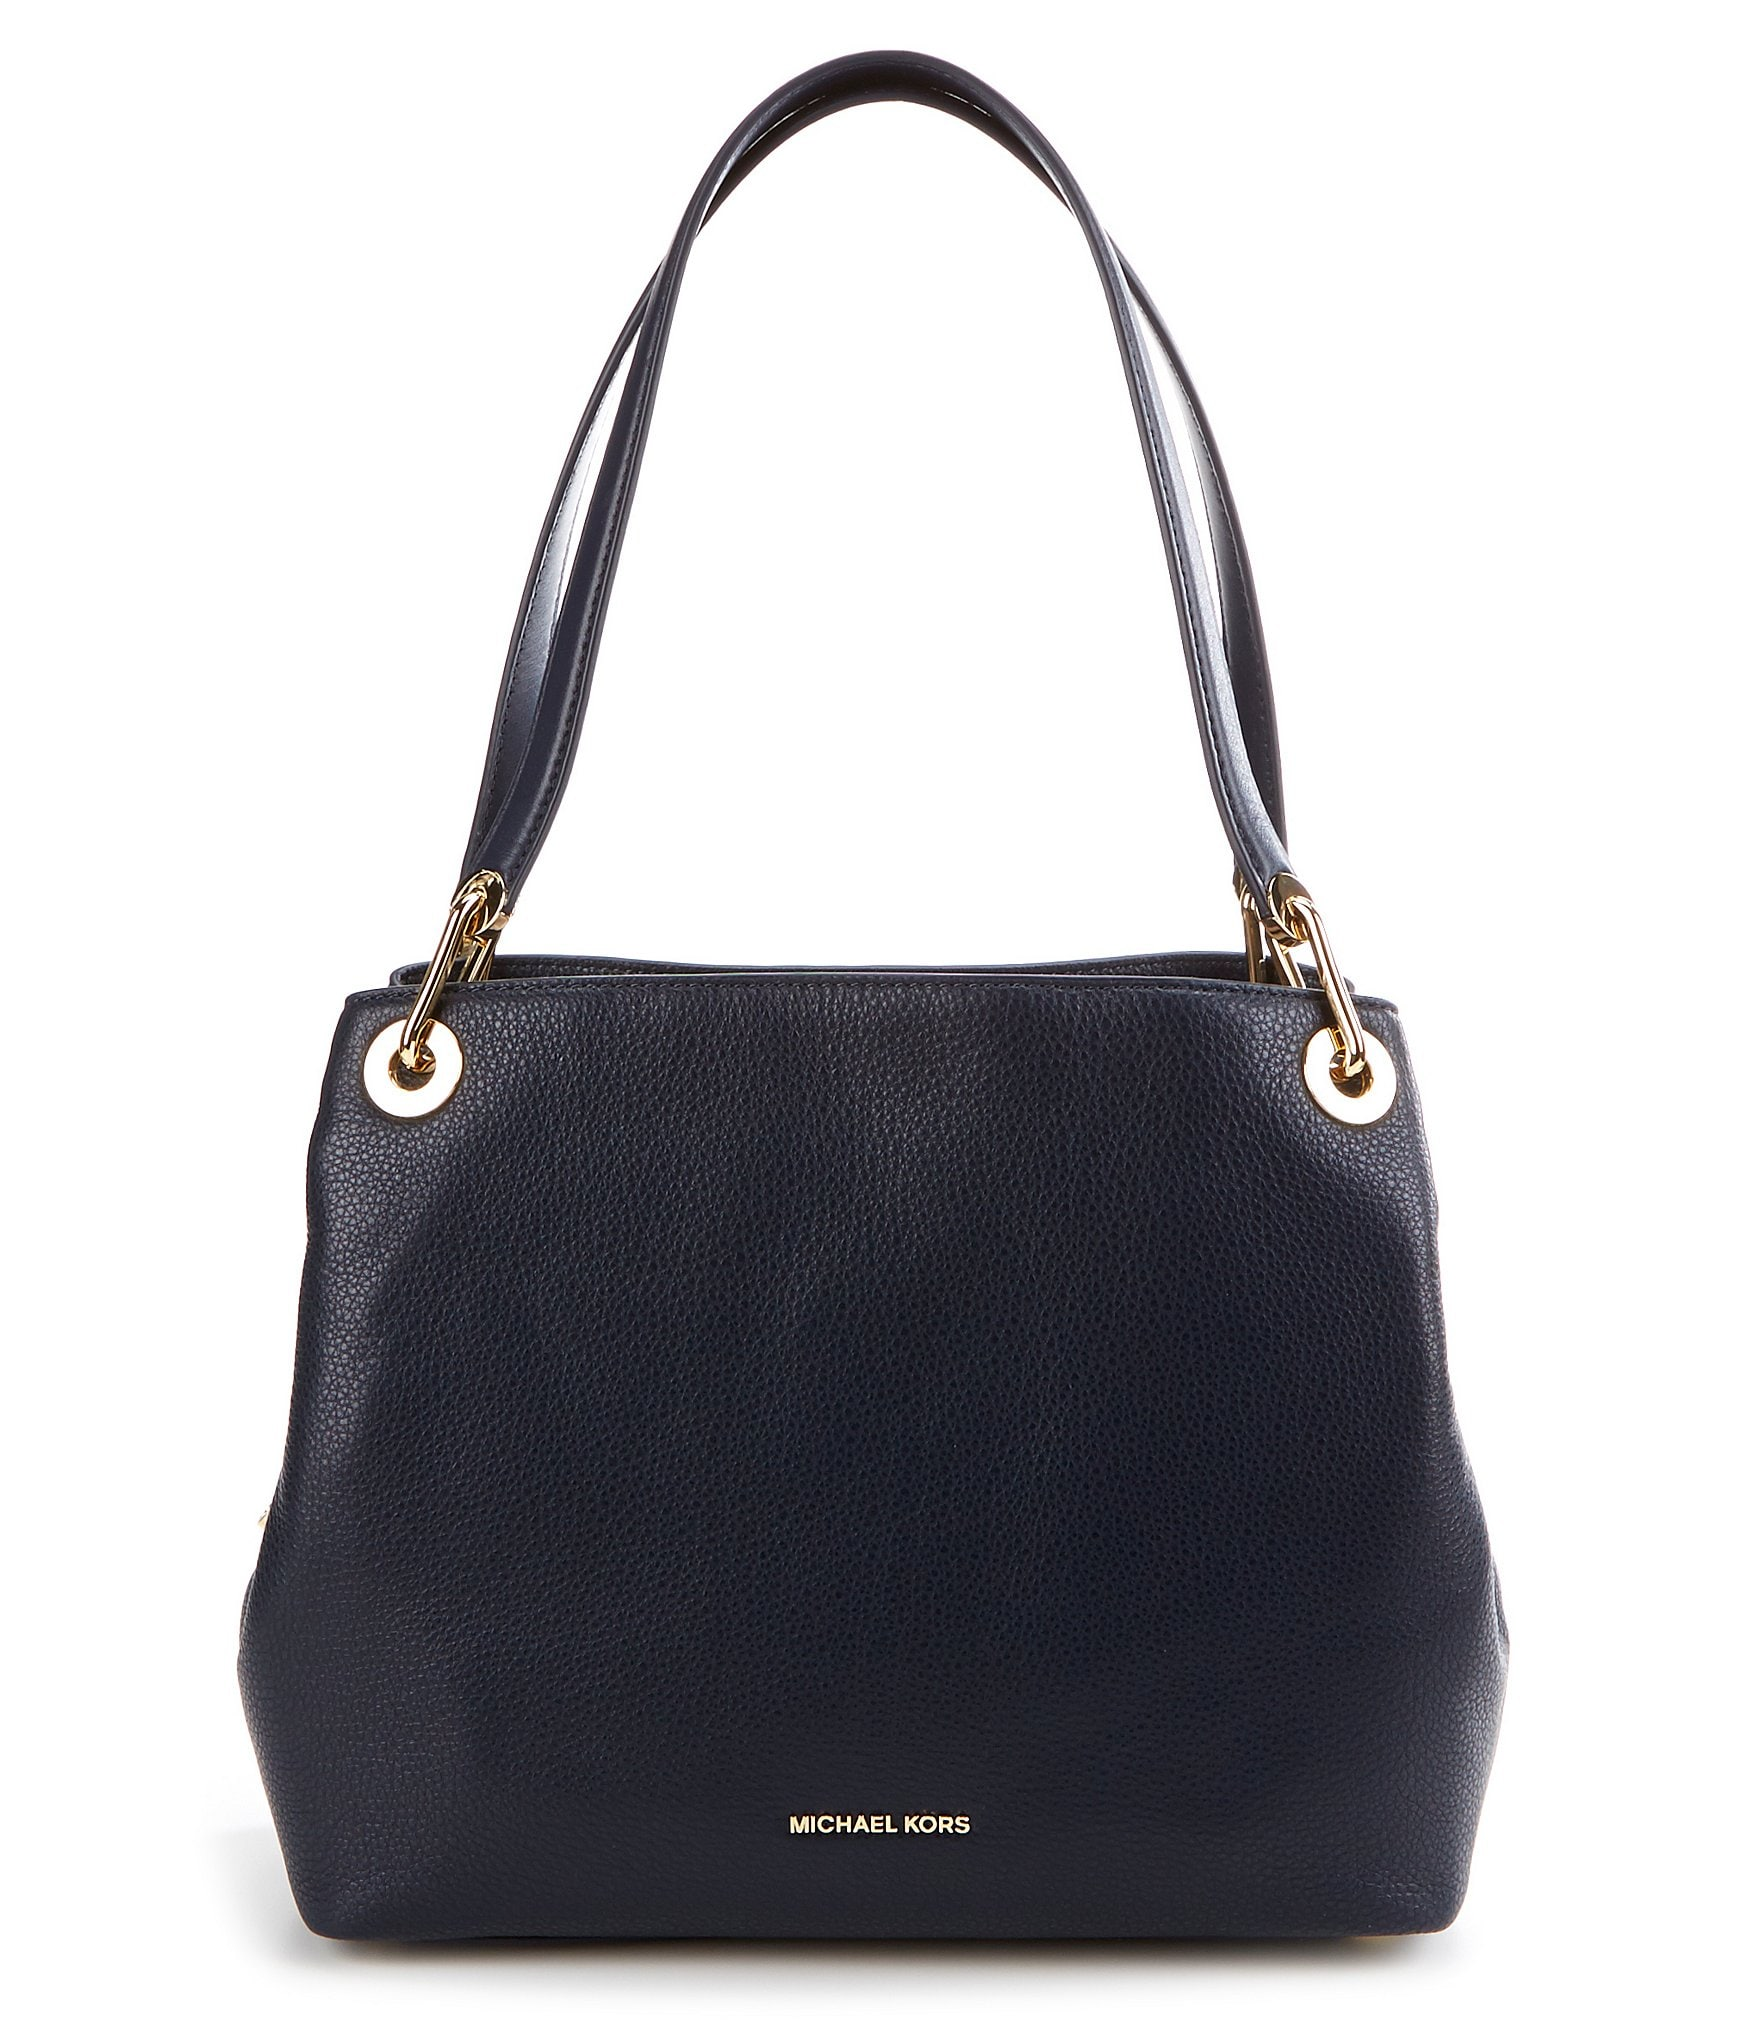 Shop for MICHAEL Michael Kors Tote Bags from Kate Spade, BRAHMIN, MICHAEL Michael Kors, COACH, & More. Visit Dillard's for all your handbags needs.